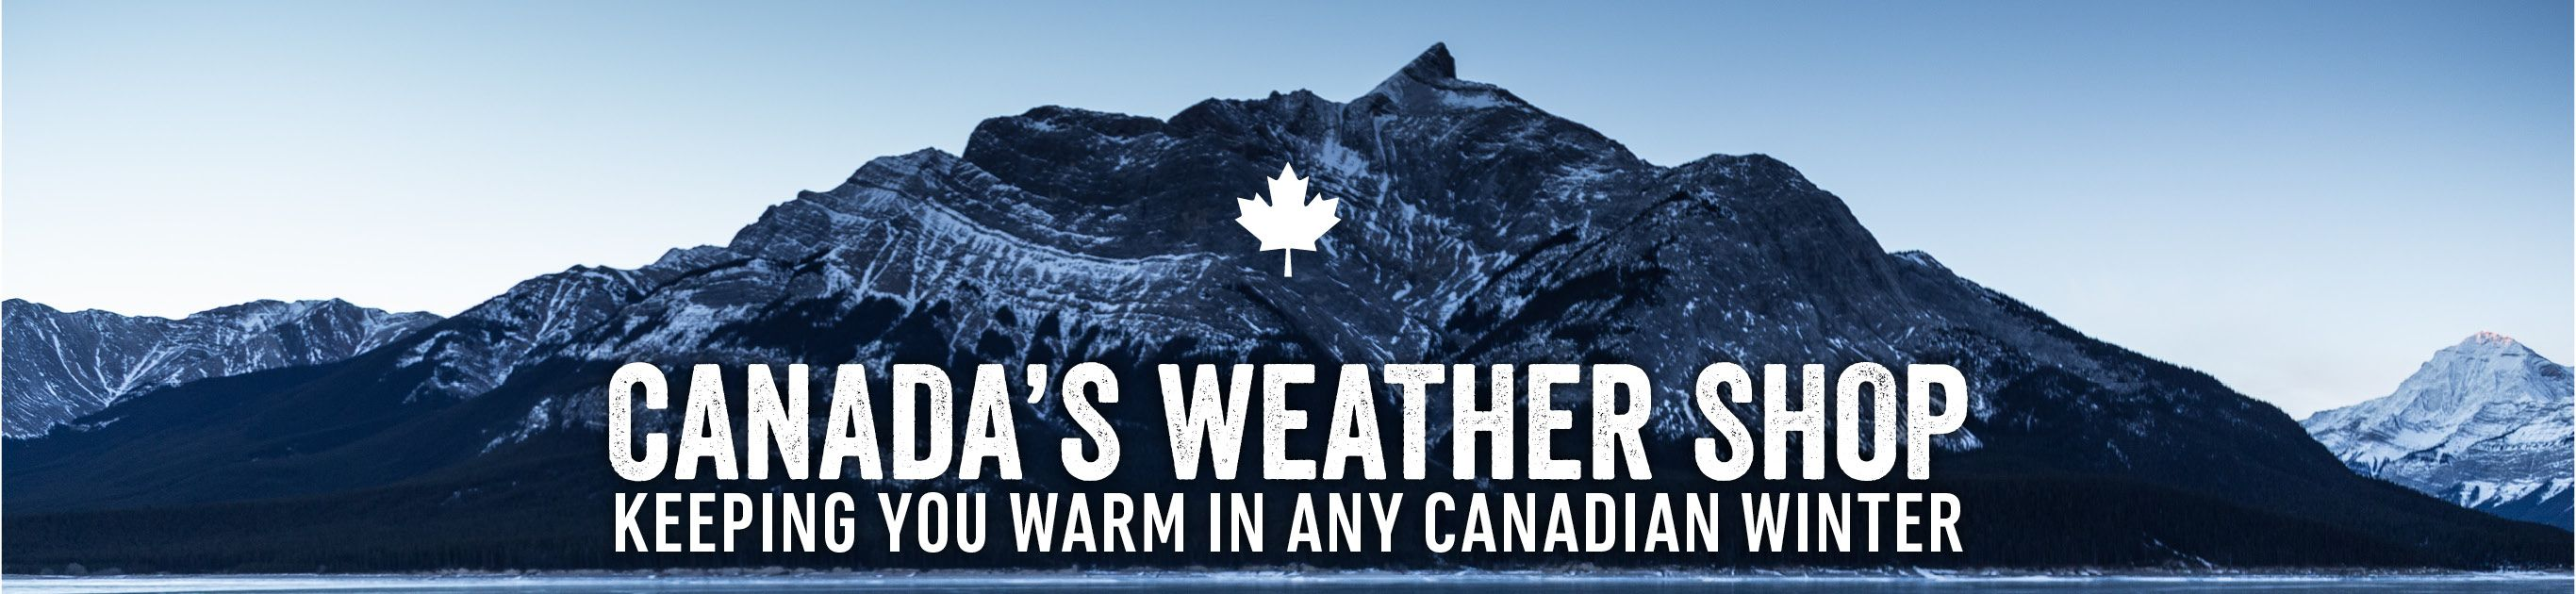 Canada's Weather Shop. Keeping You Warm in Any Canadian Winter.